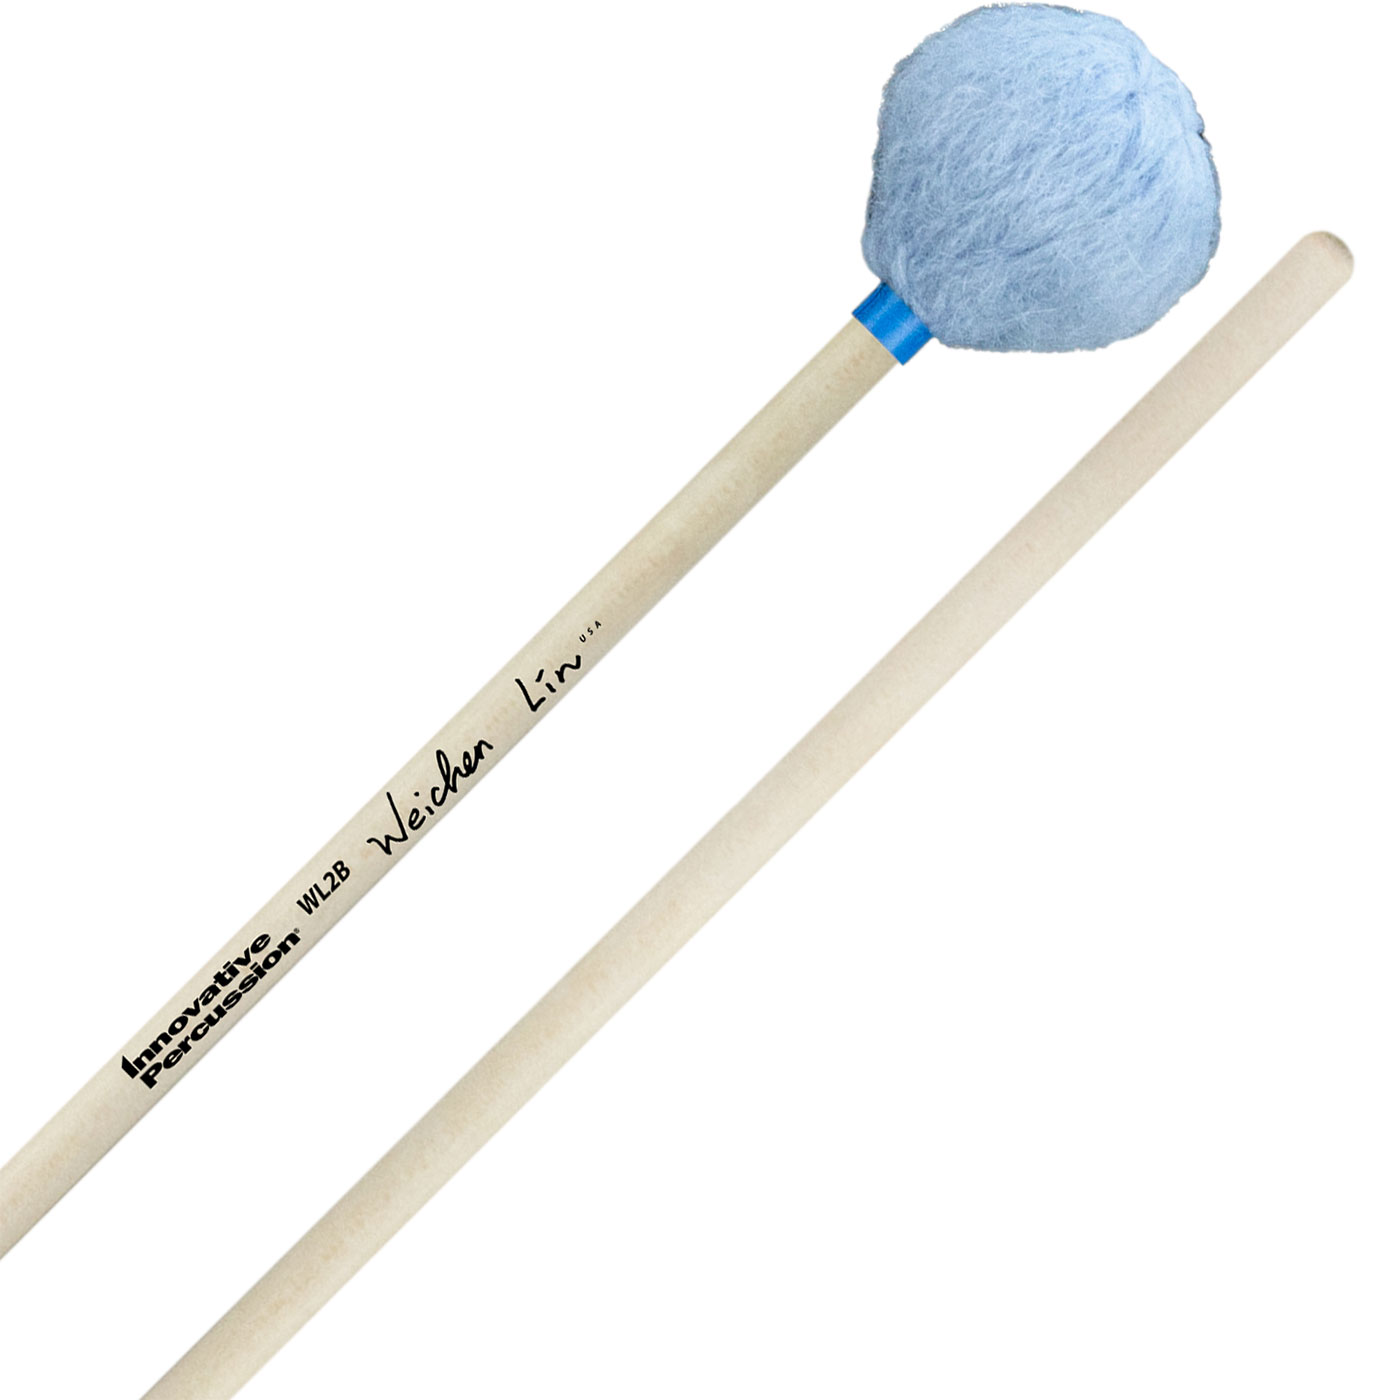 Innovative Percussion Wei-Chen Lin Signature Soft Marimba Mallets with Birch Handles